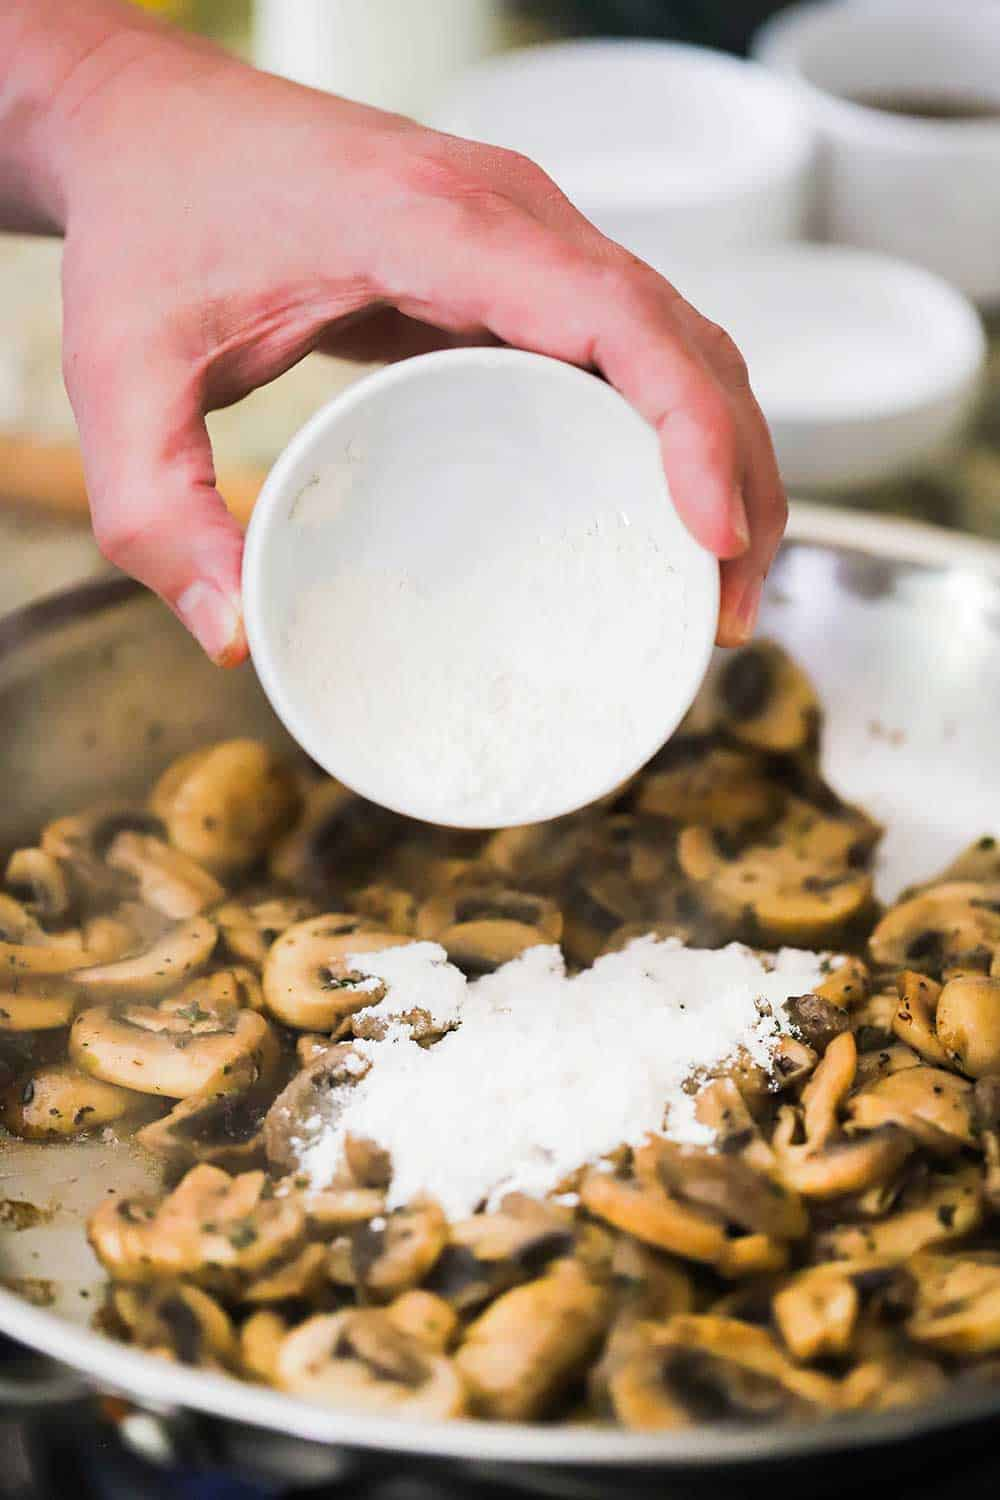 A hand sprinkling flour from a small bowl into a skillet filled with sautéed mushrooms.